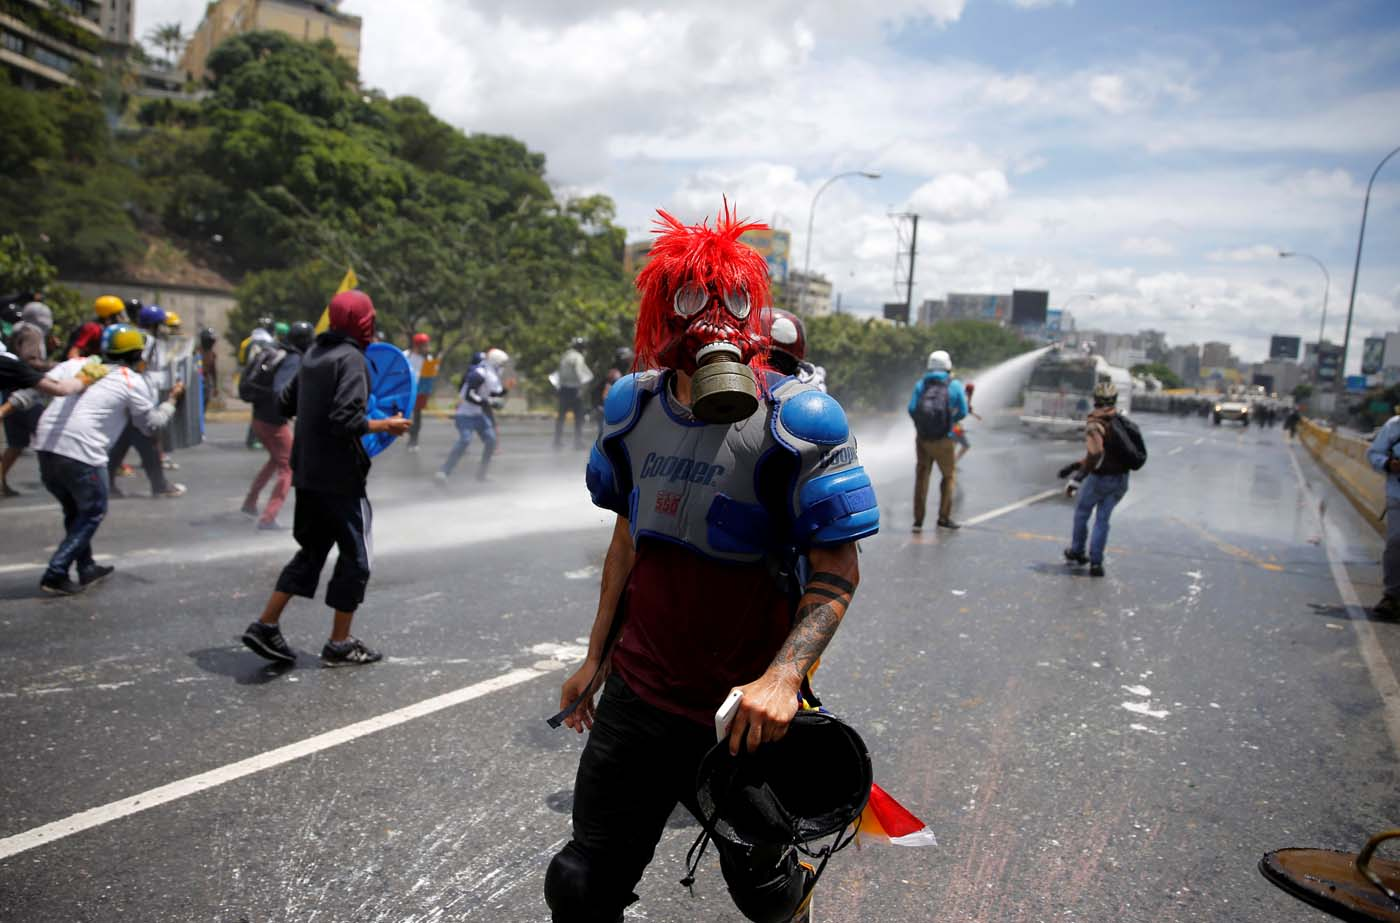 A demonstrator wearing a gas mask attends a rally against Venezuela's President Nicolas Maduro's government in Caracas, Venezuela, June 19, 2017. REUTERS/Ivan Alvarado